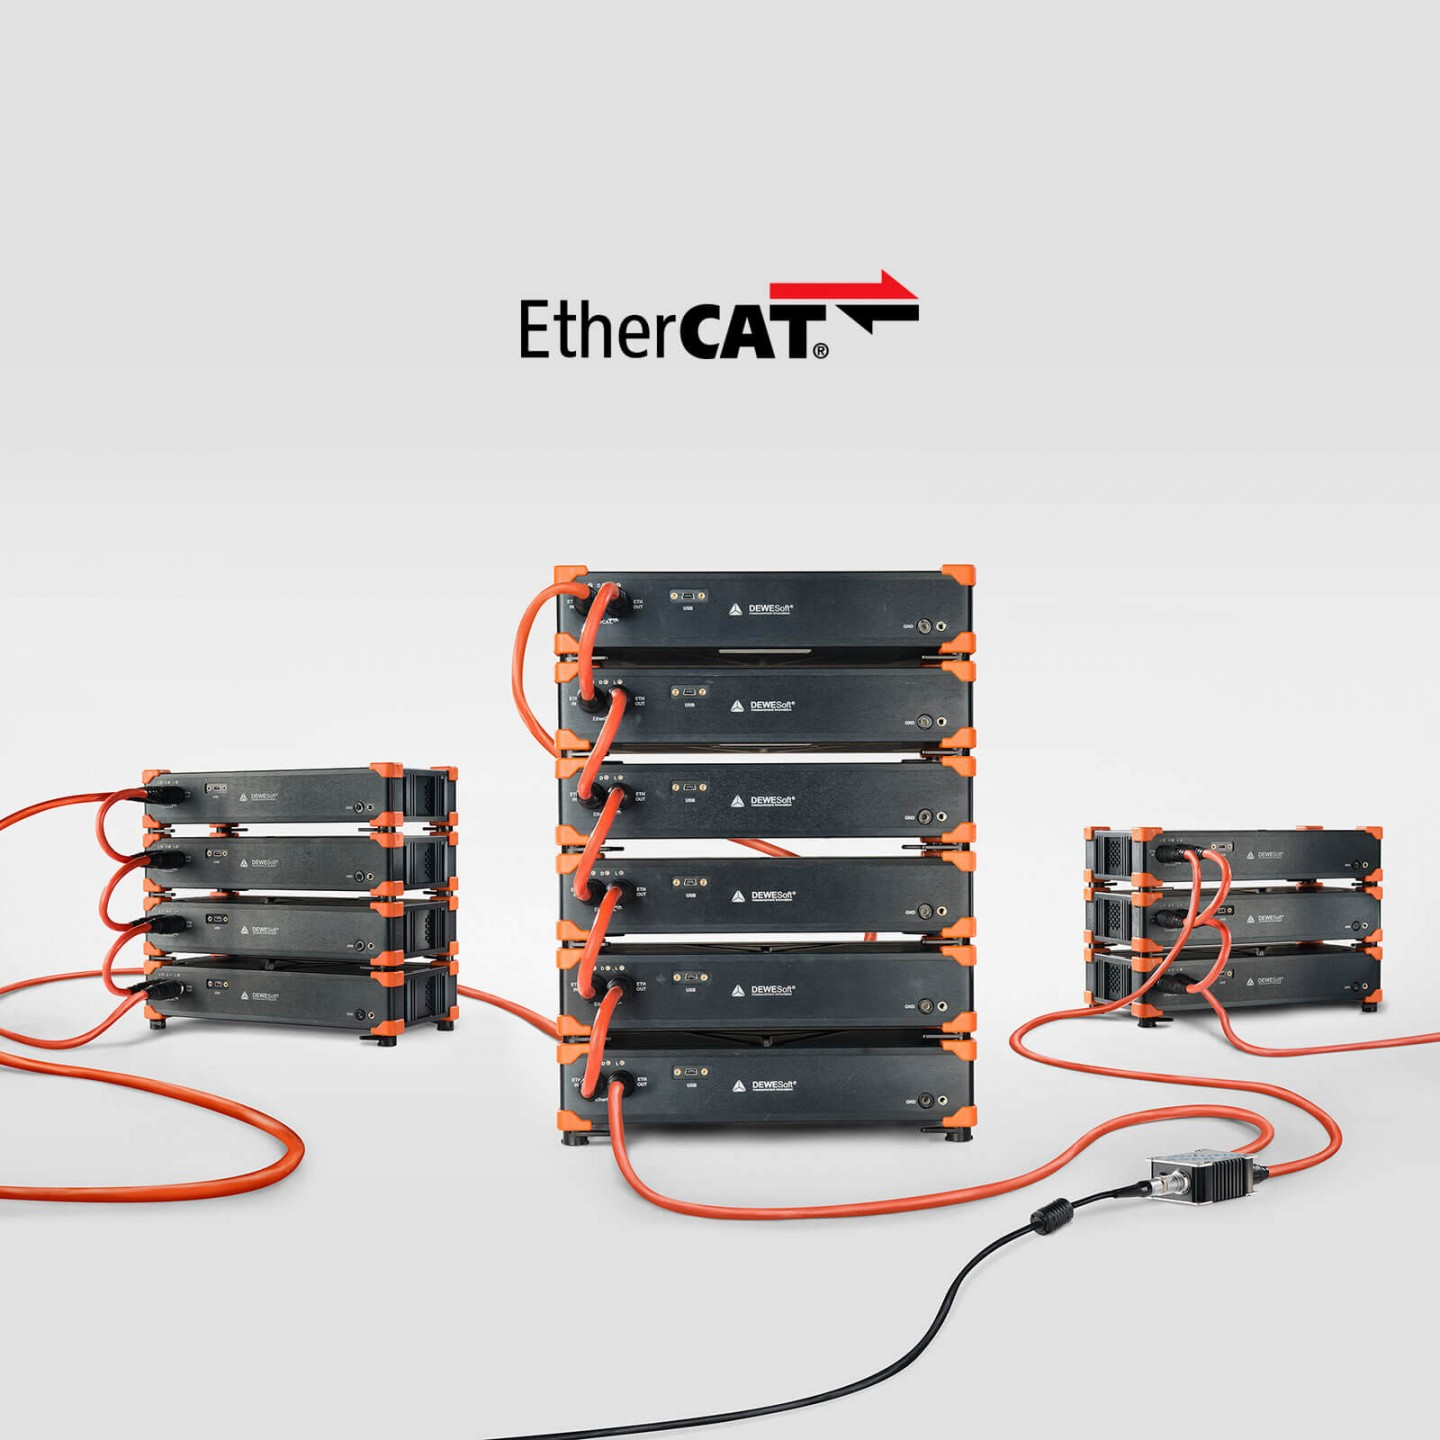 USB or Distributed DAQ via EtherCAT Interface